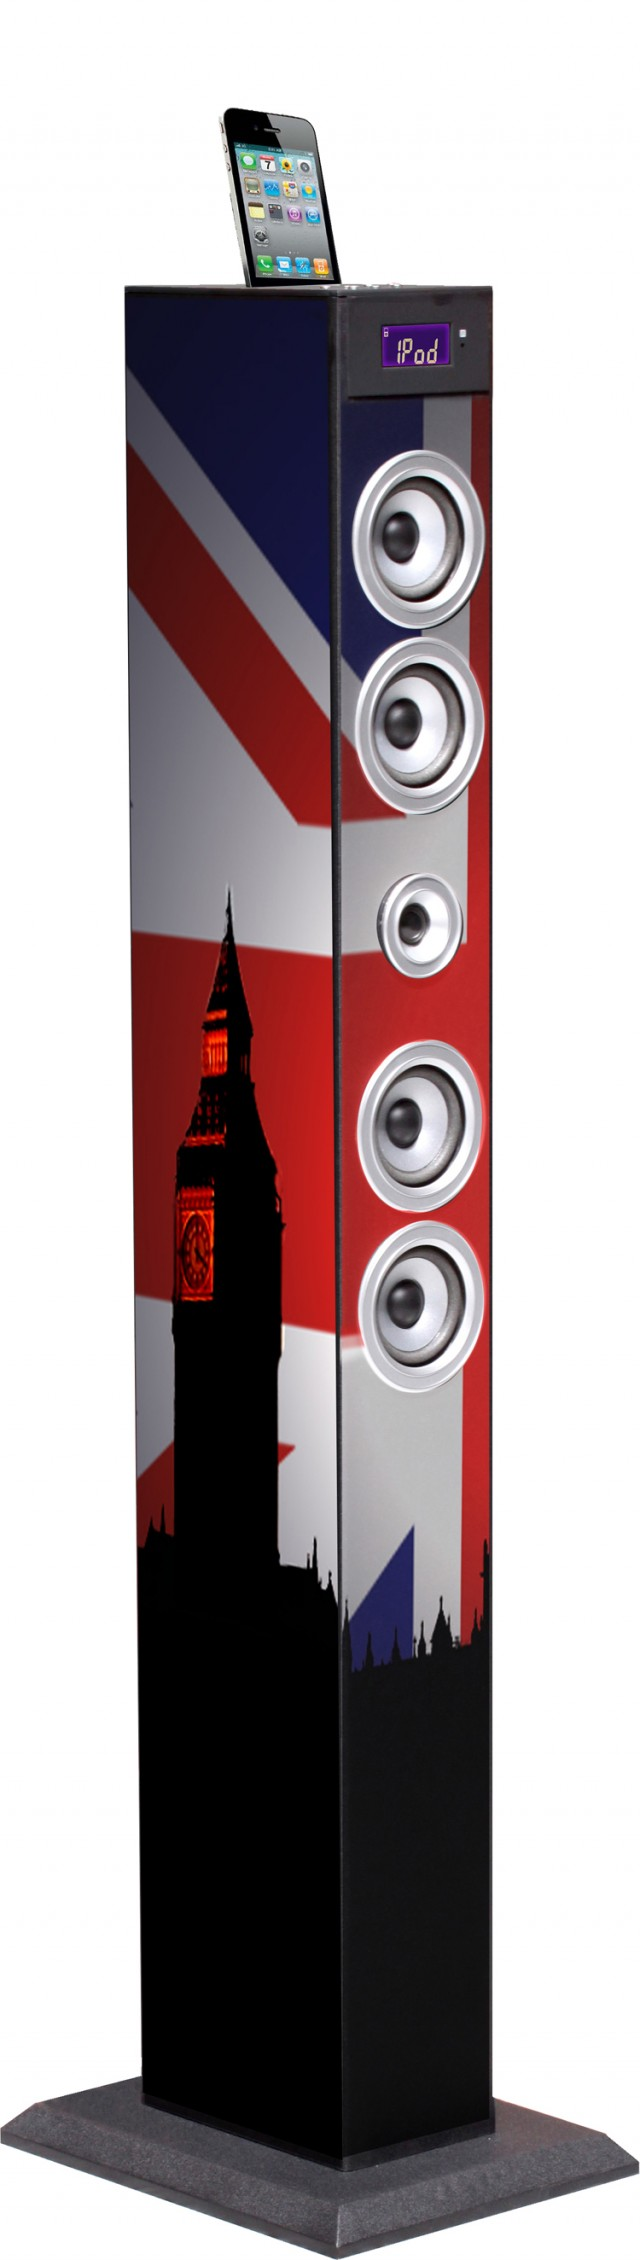 Torre Multimediale plug&play UK BIG BEN – Packshot